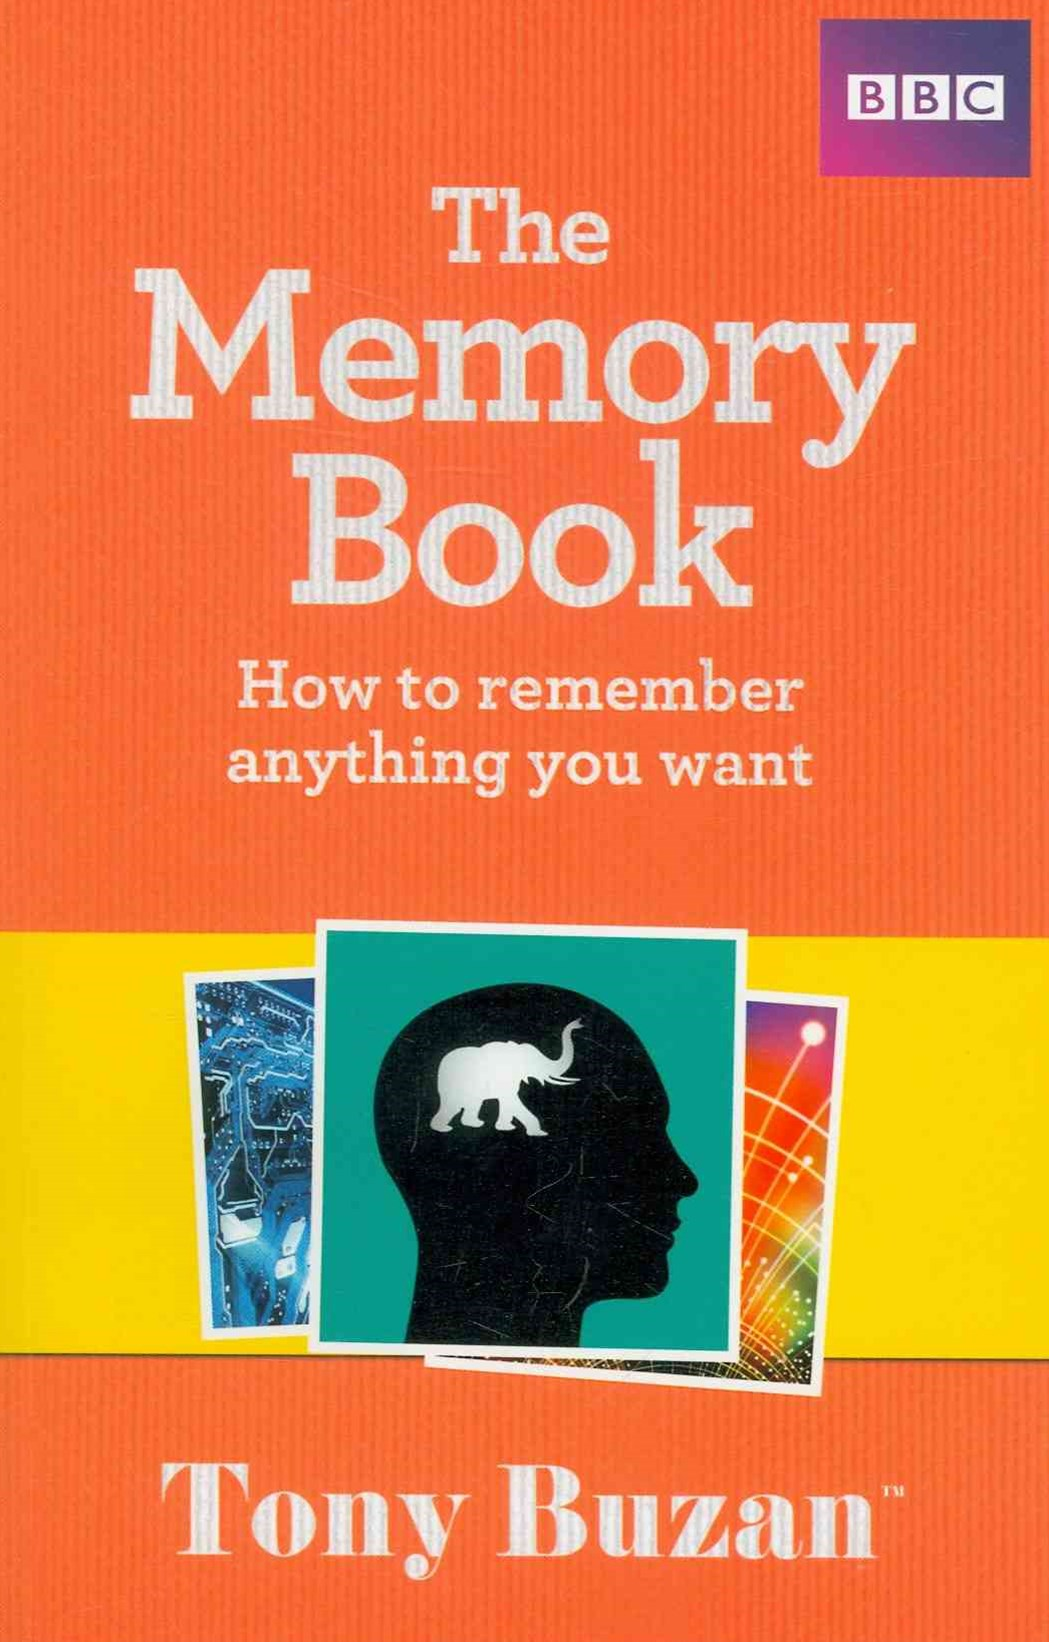 The Memory Book: How to remember anything you want